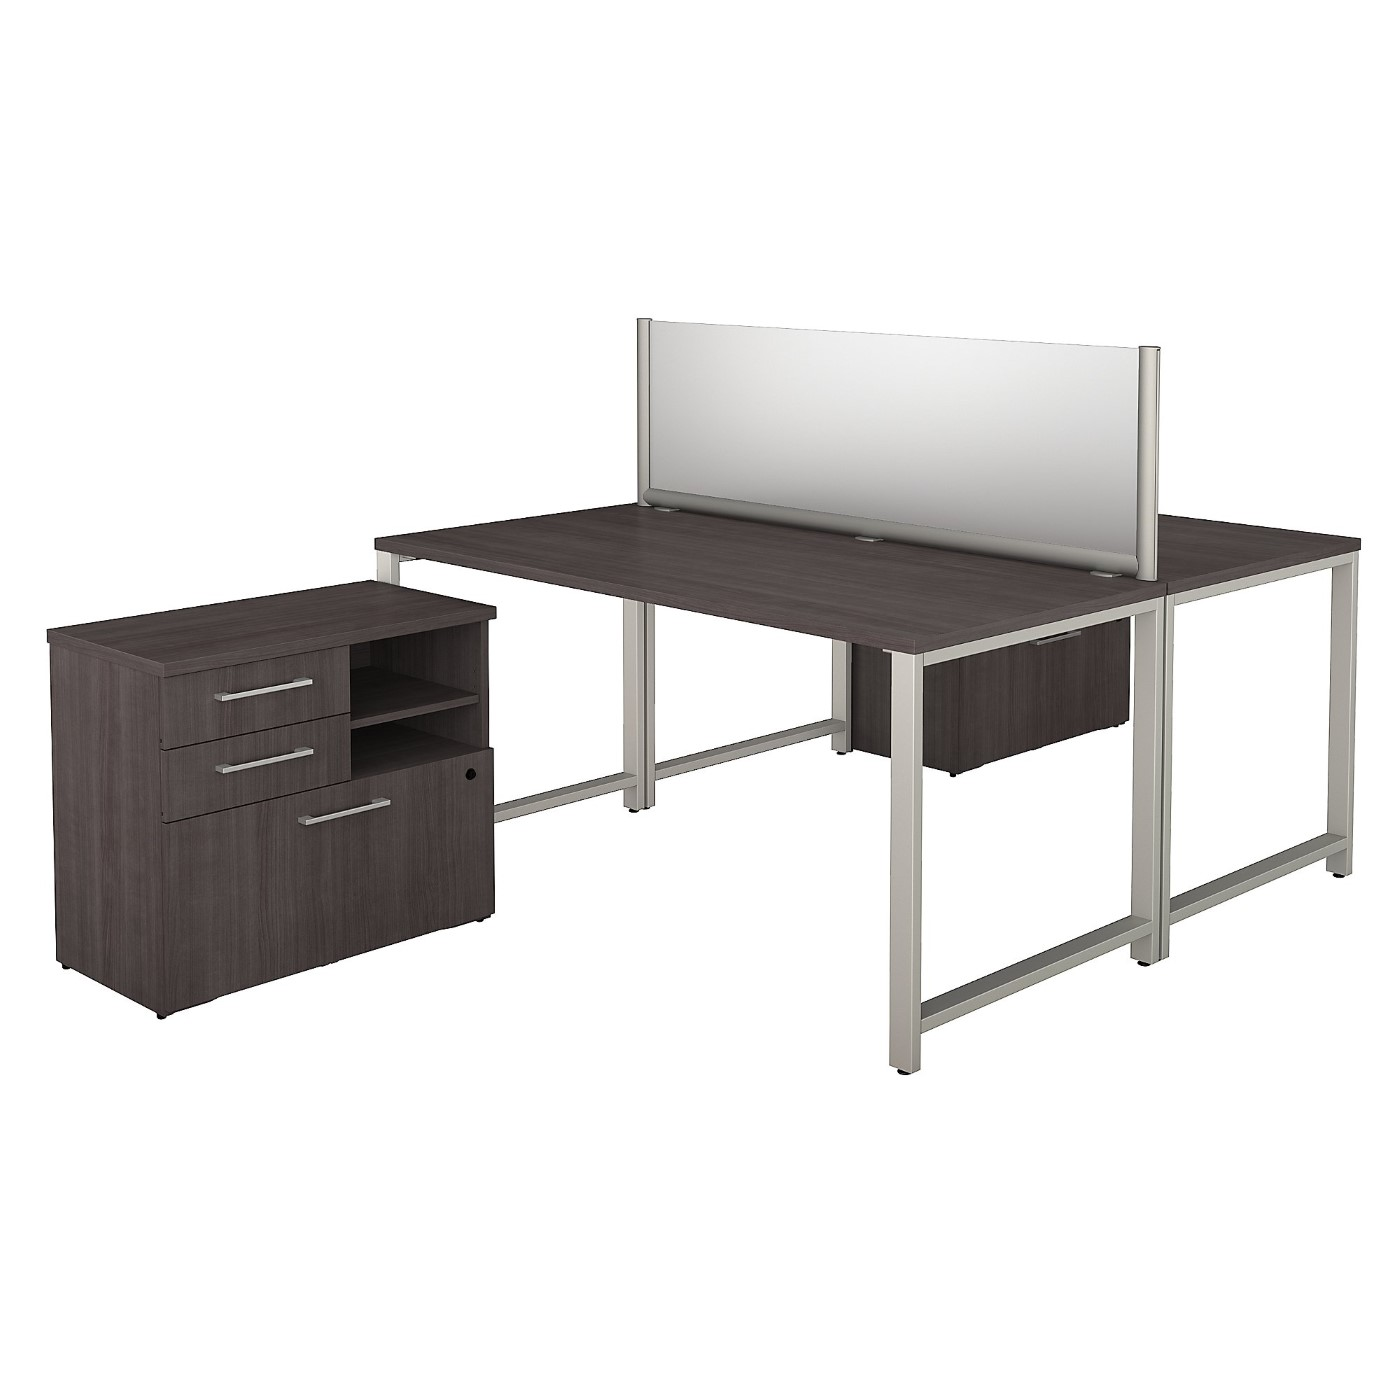 BUSH BUSINESS FURNITURE 400 SERIES 60W X 30D 2 PERSON WORKSTATION WITH TABLE DESKS AND STORAGE. FREE SHIPPING